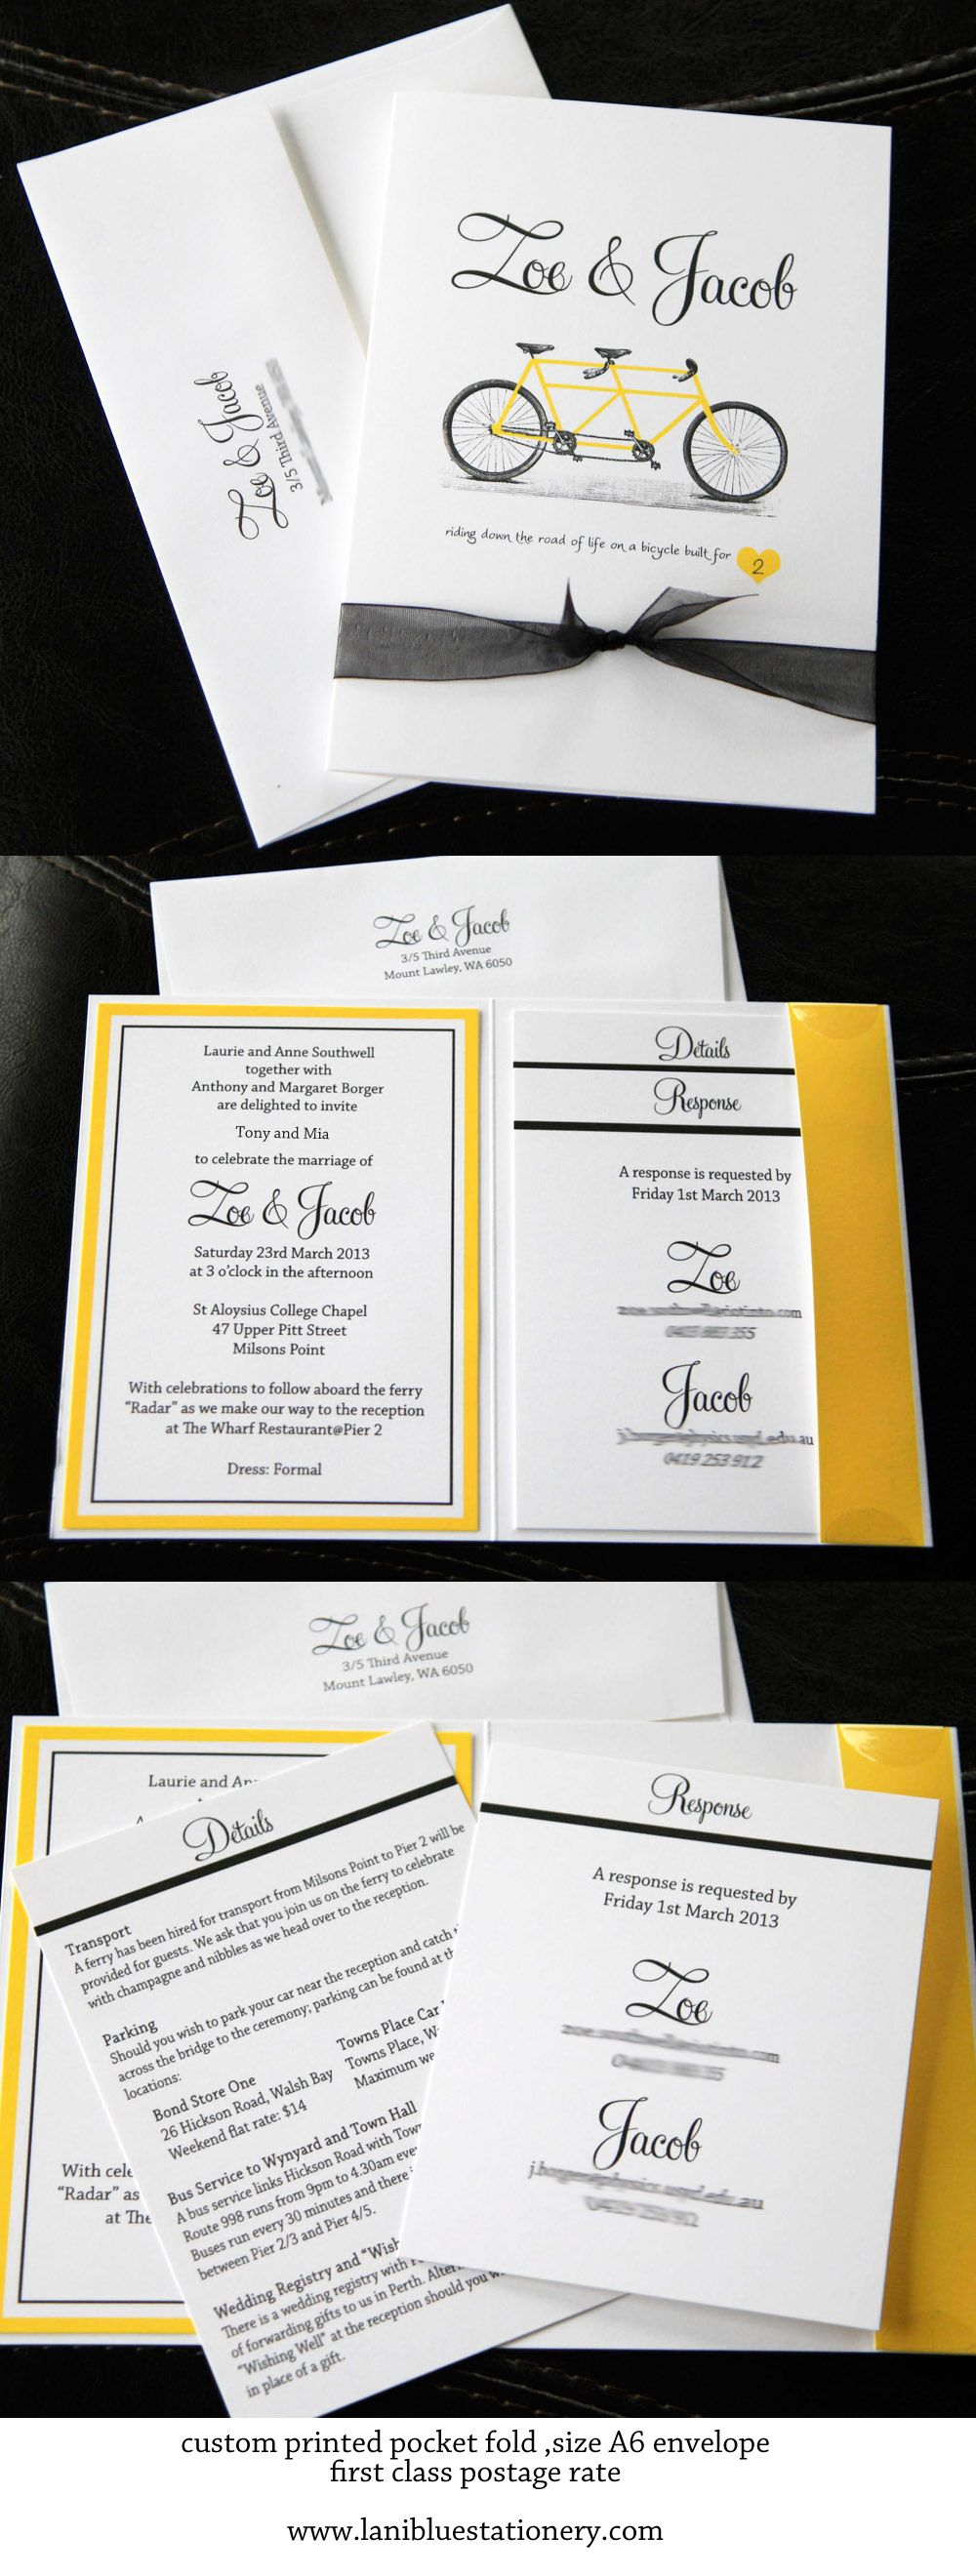 Custom wedding invitations, custom printed pocket fold. Requires just first class postage to mail.